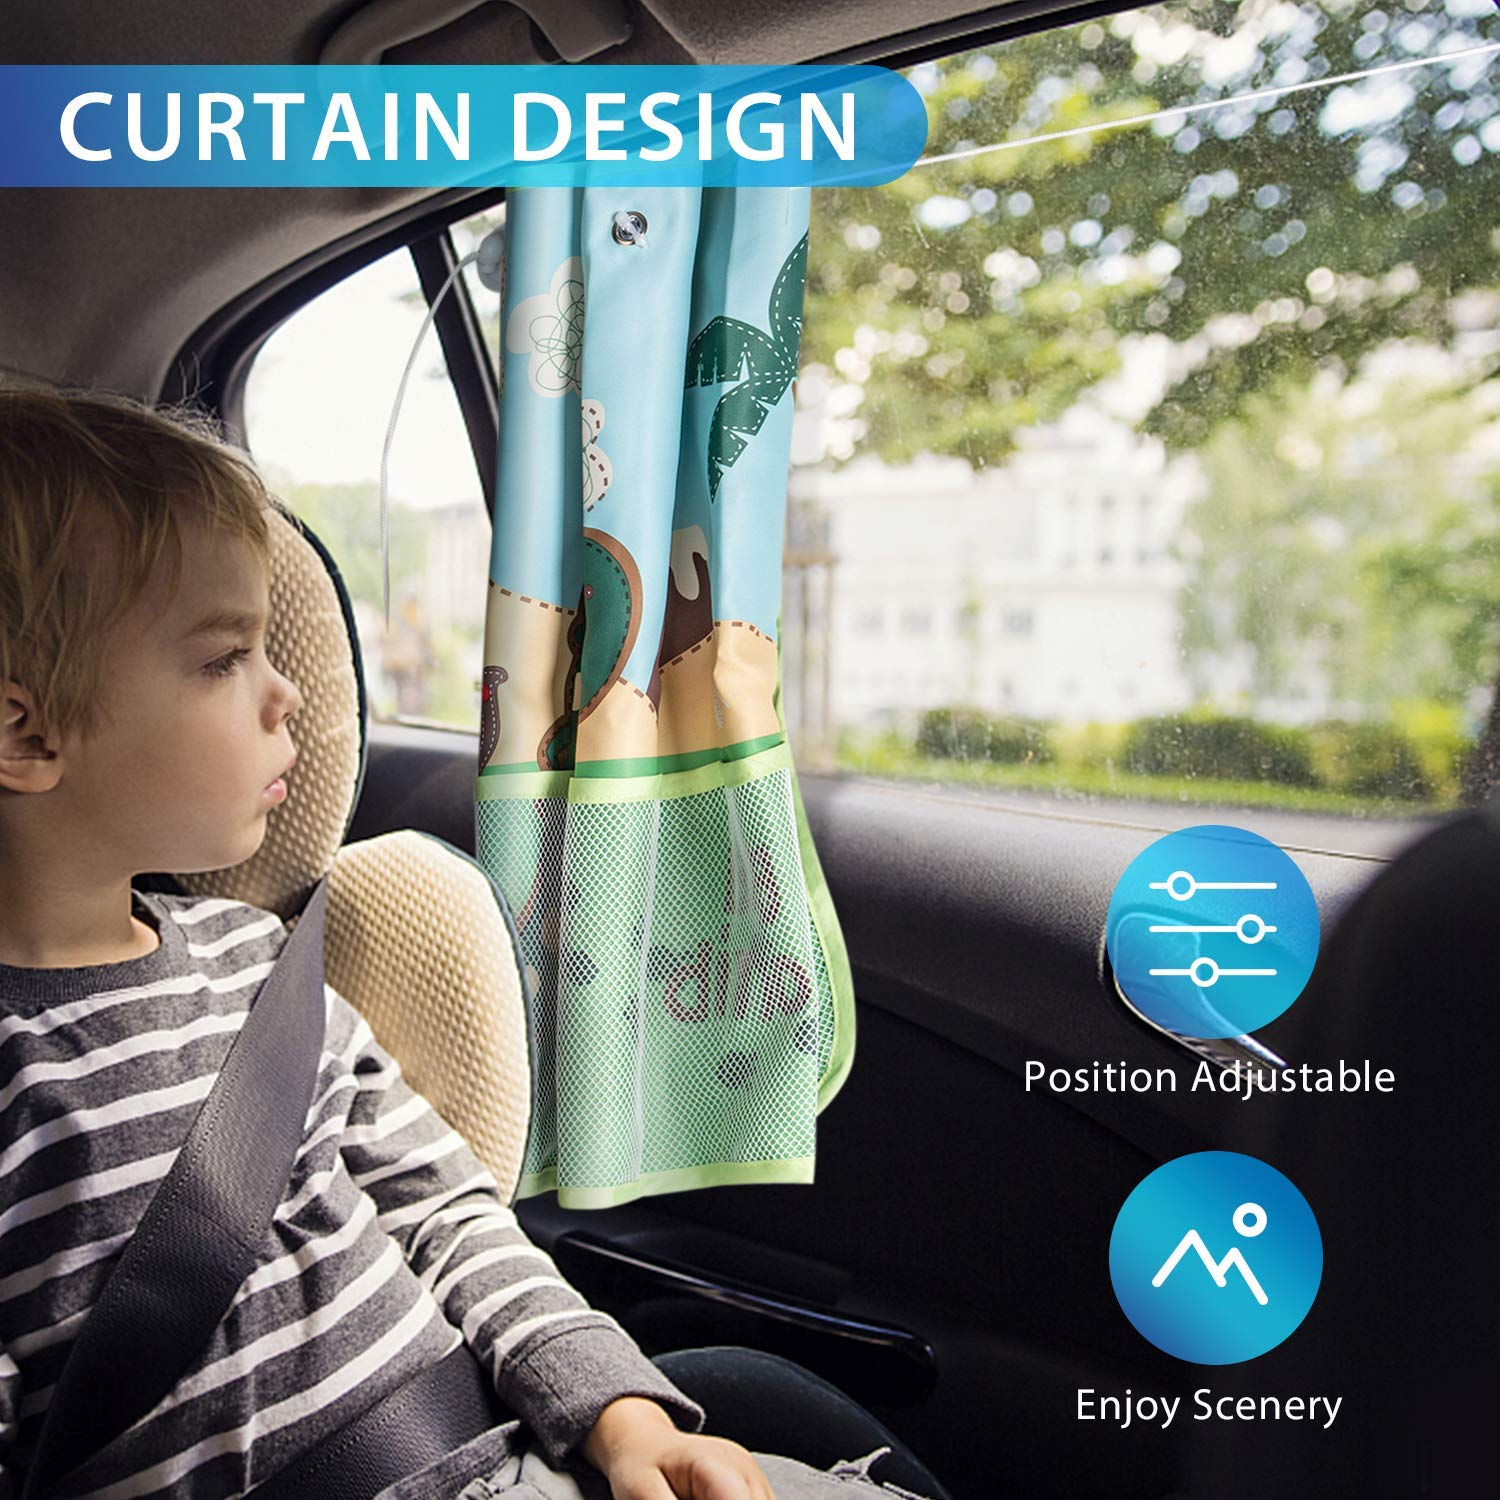 Easy Install Hand-in-Hand Fit Most Cars Car Window Sun Shades for Baby with Practical Pockets Protect Your Kids from UV